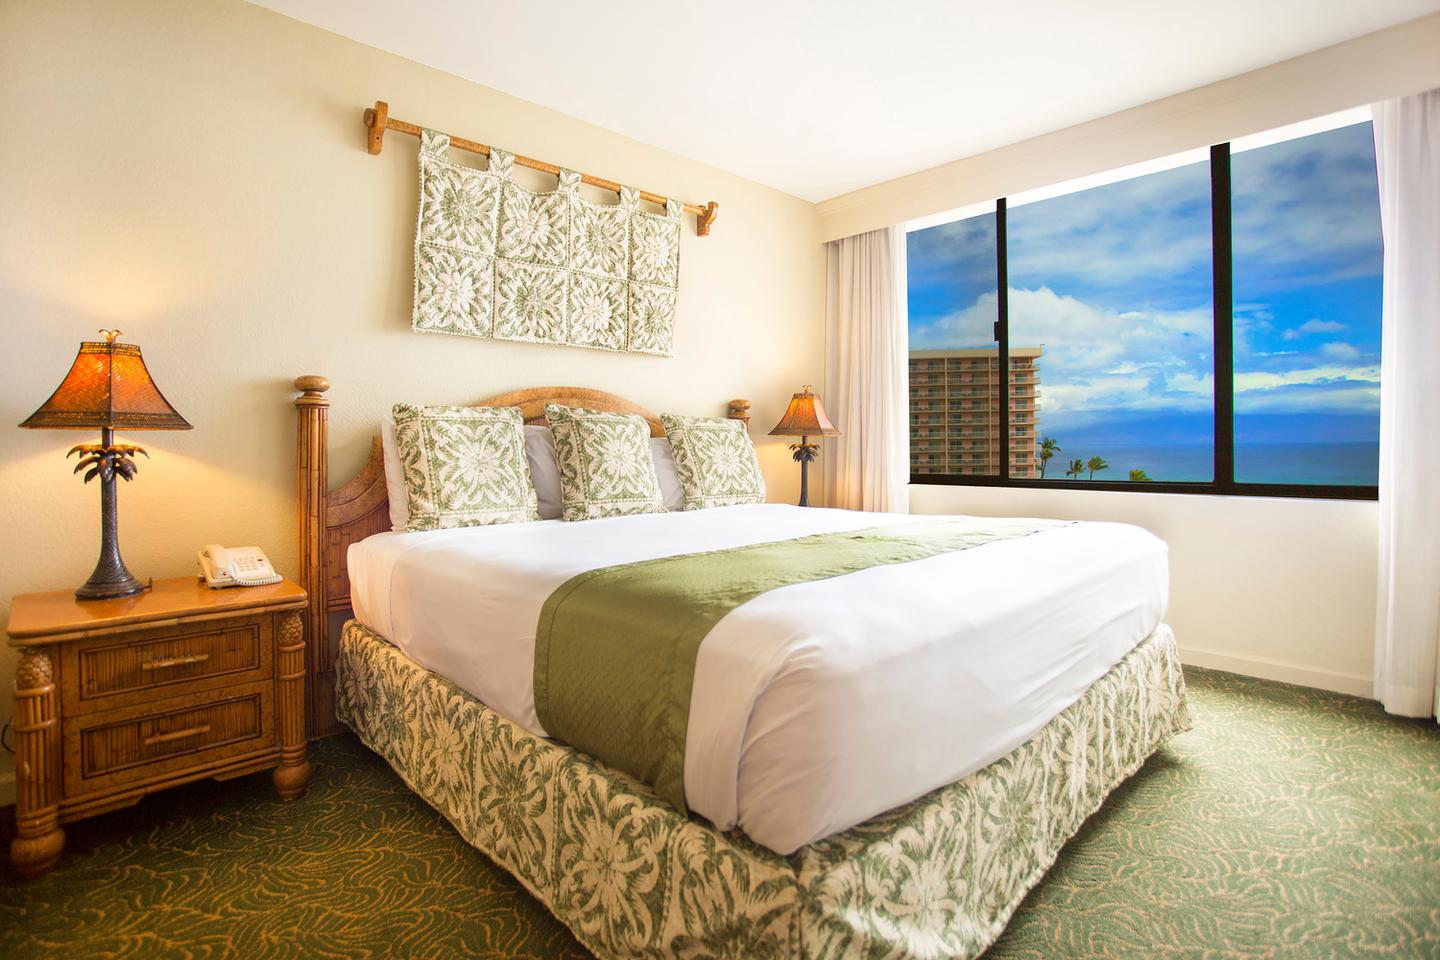 Wonderful Aston Kaanapali Shores Room 1bdrm 1440x960